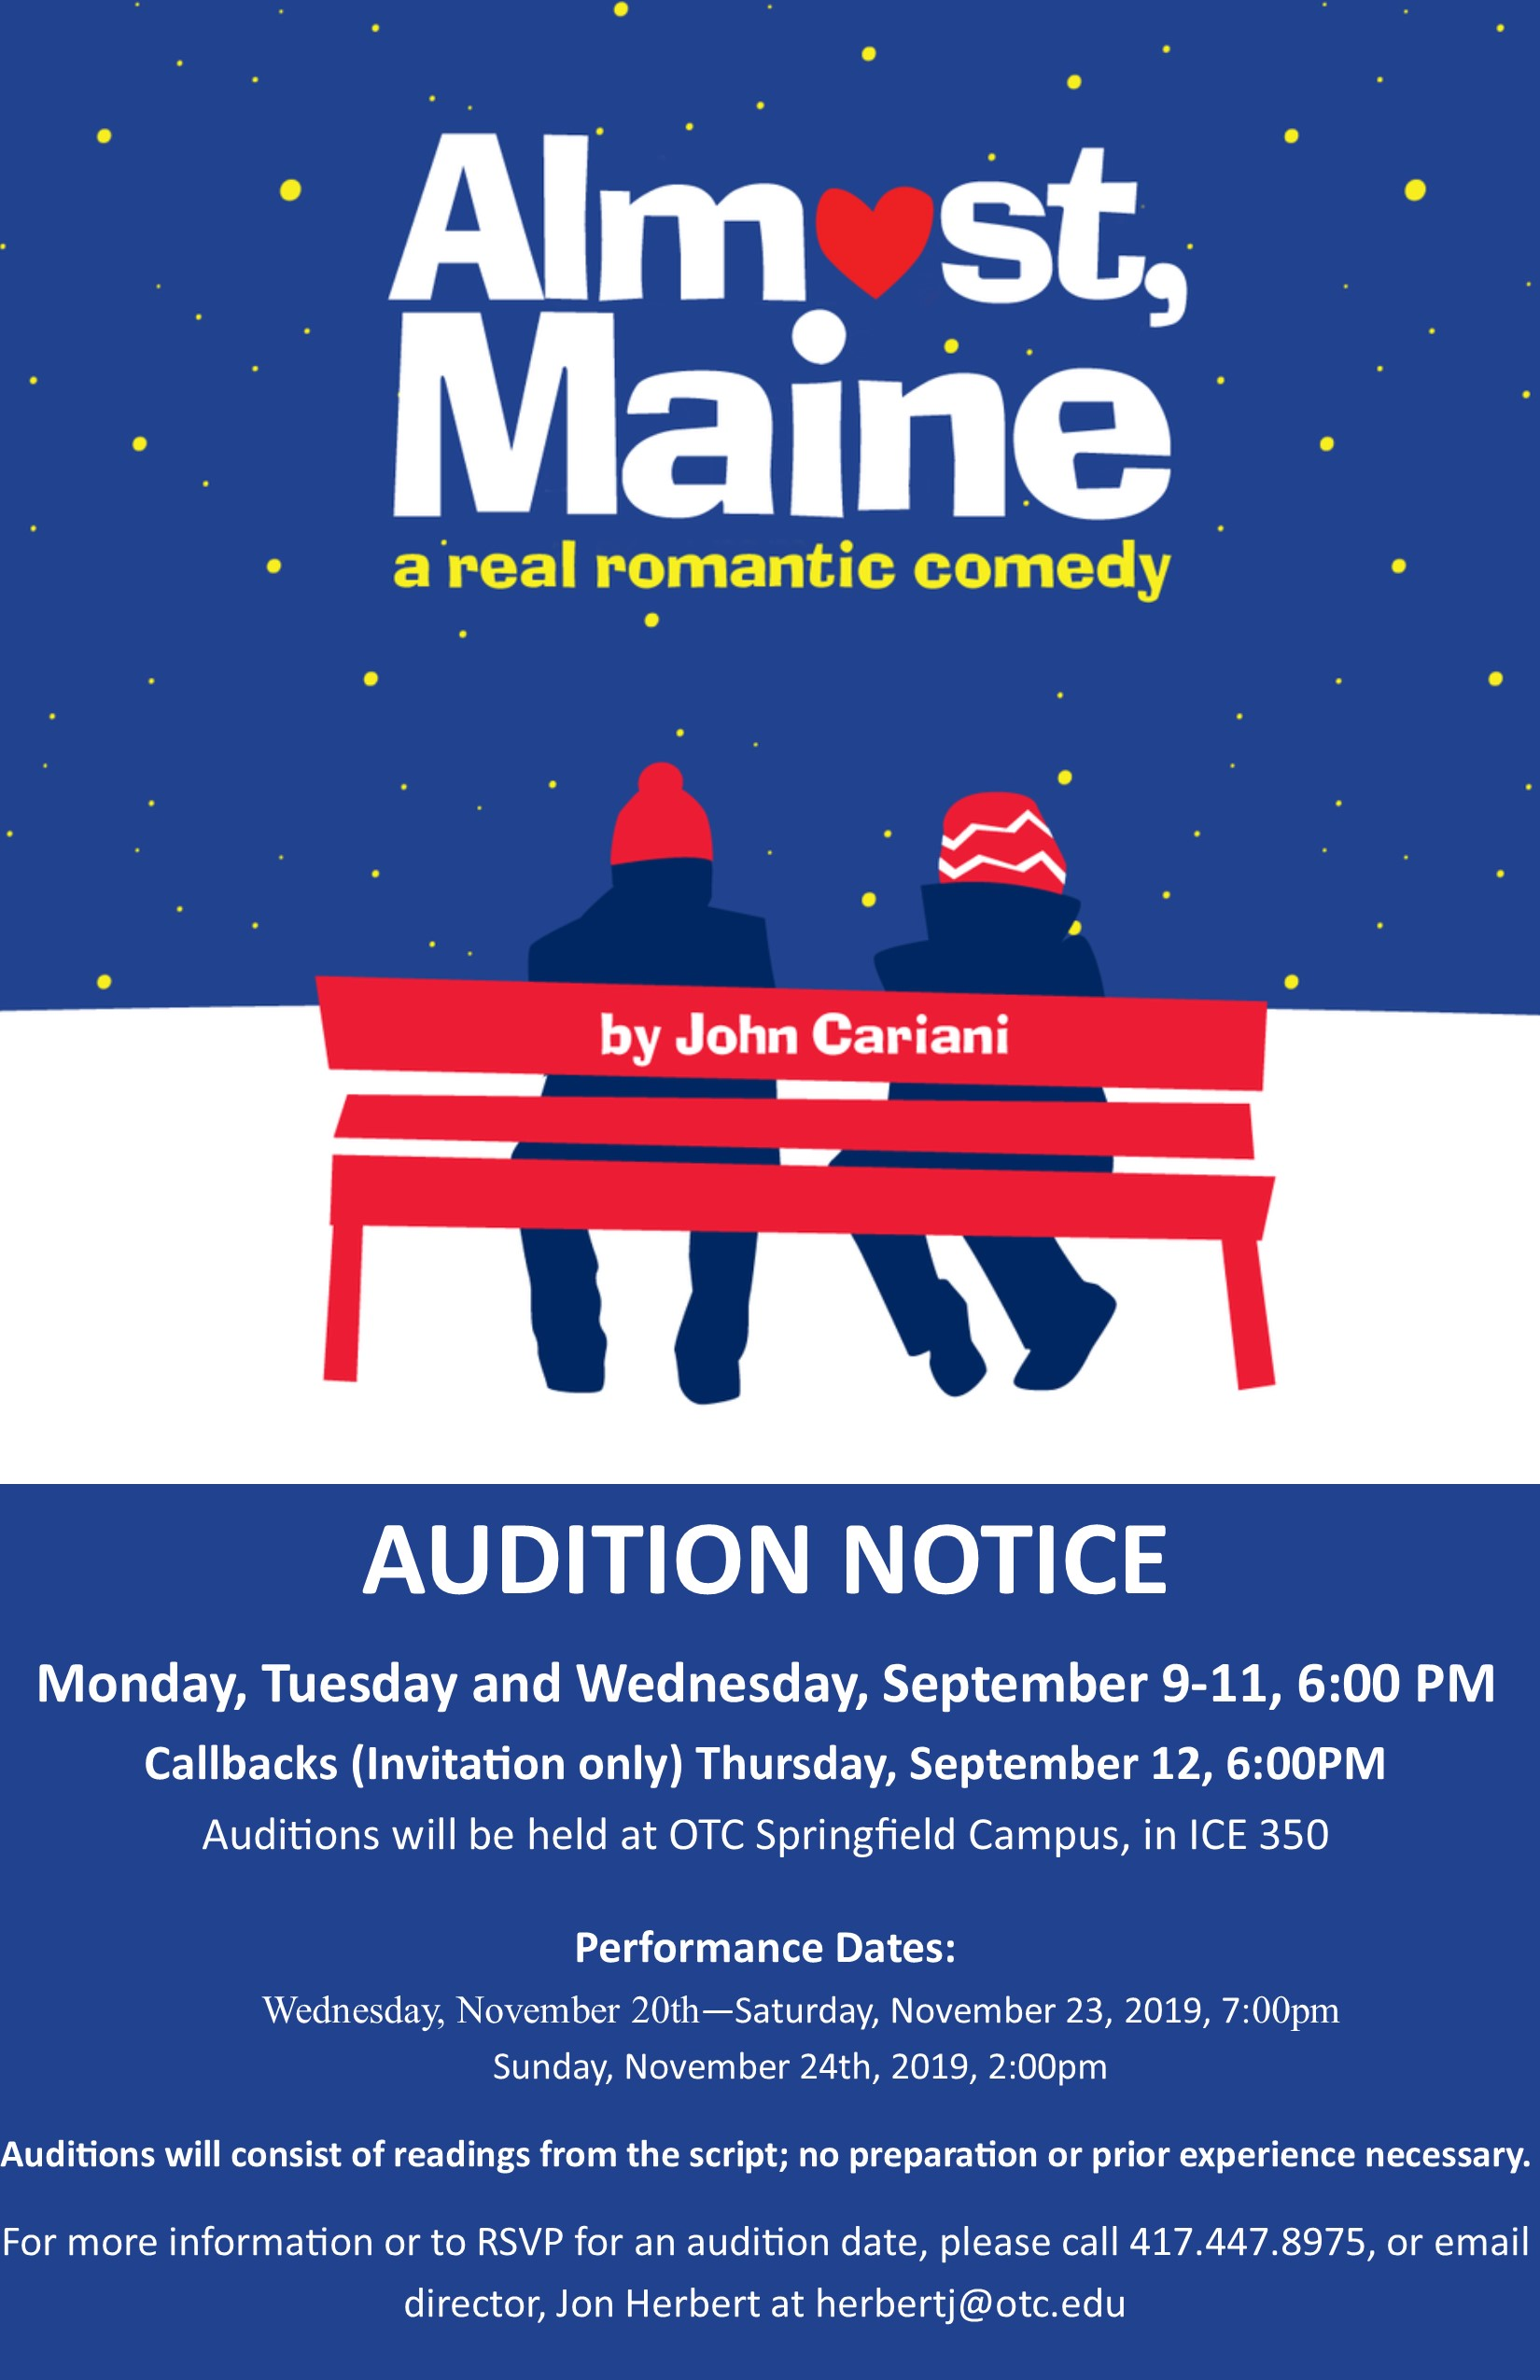 Almost Maine Audition Poster